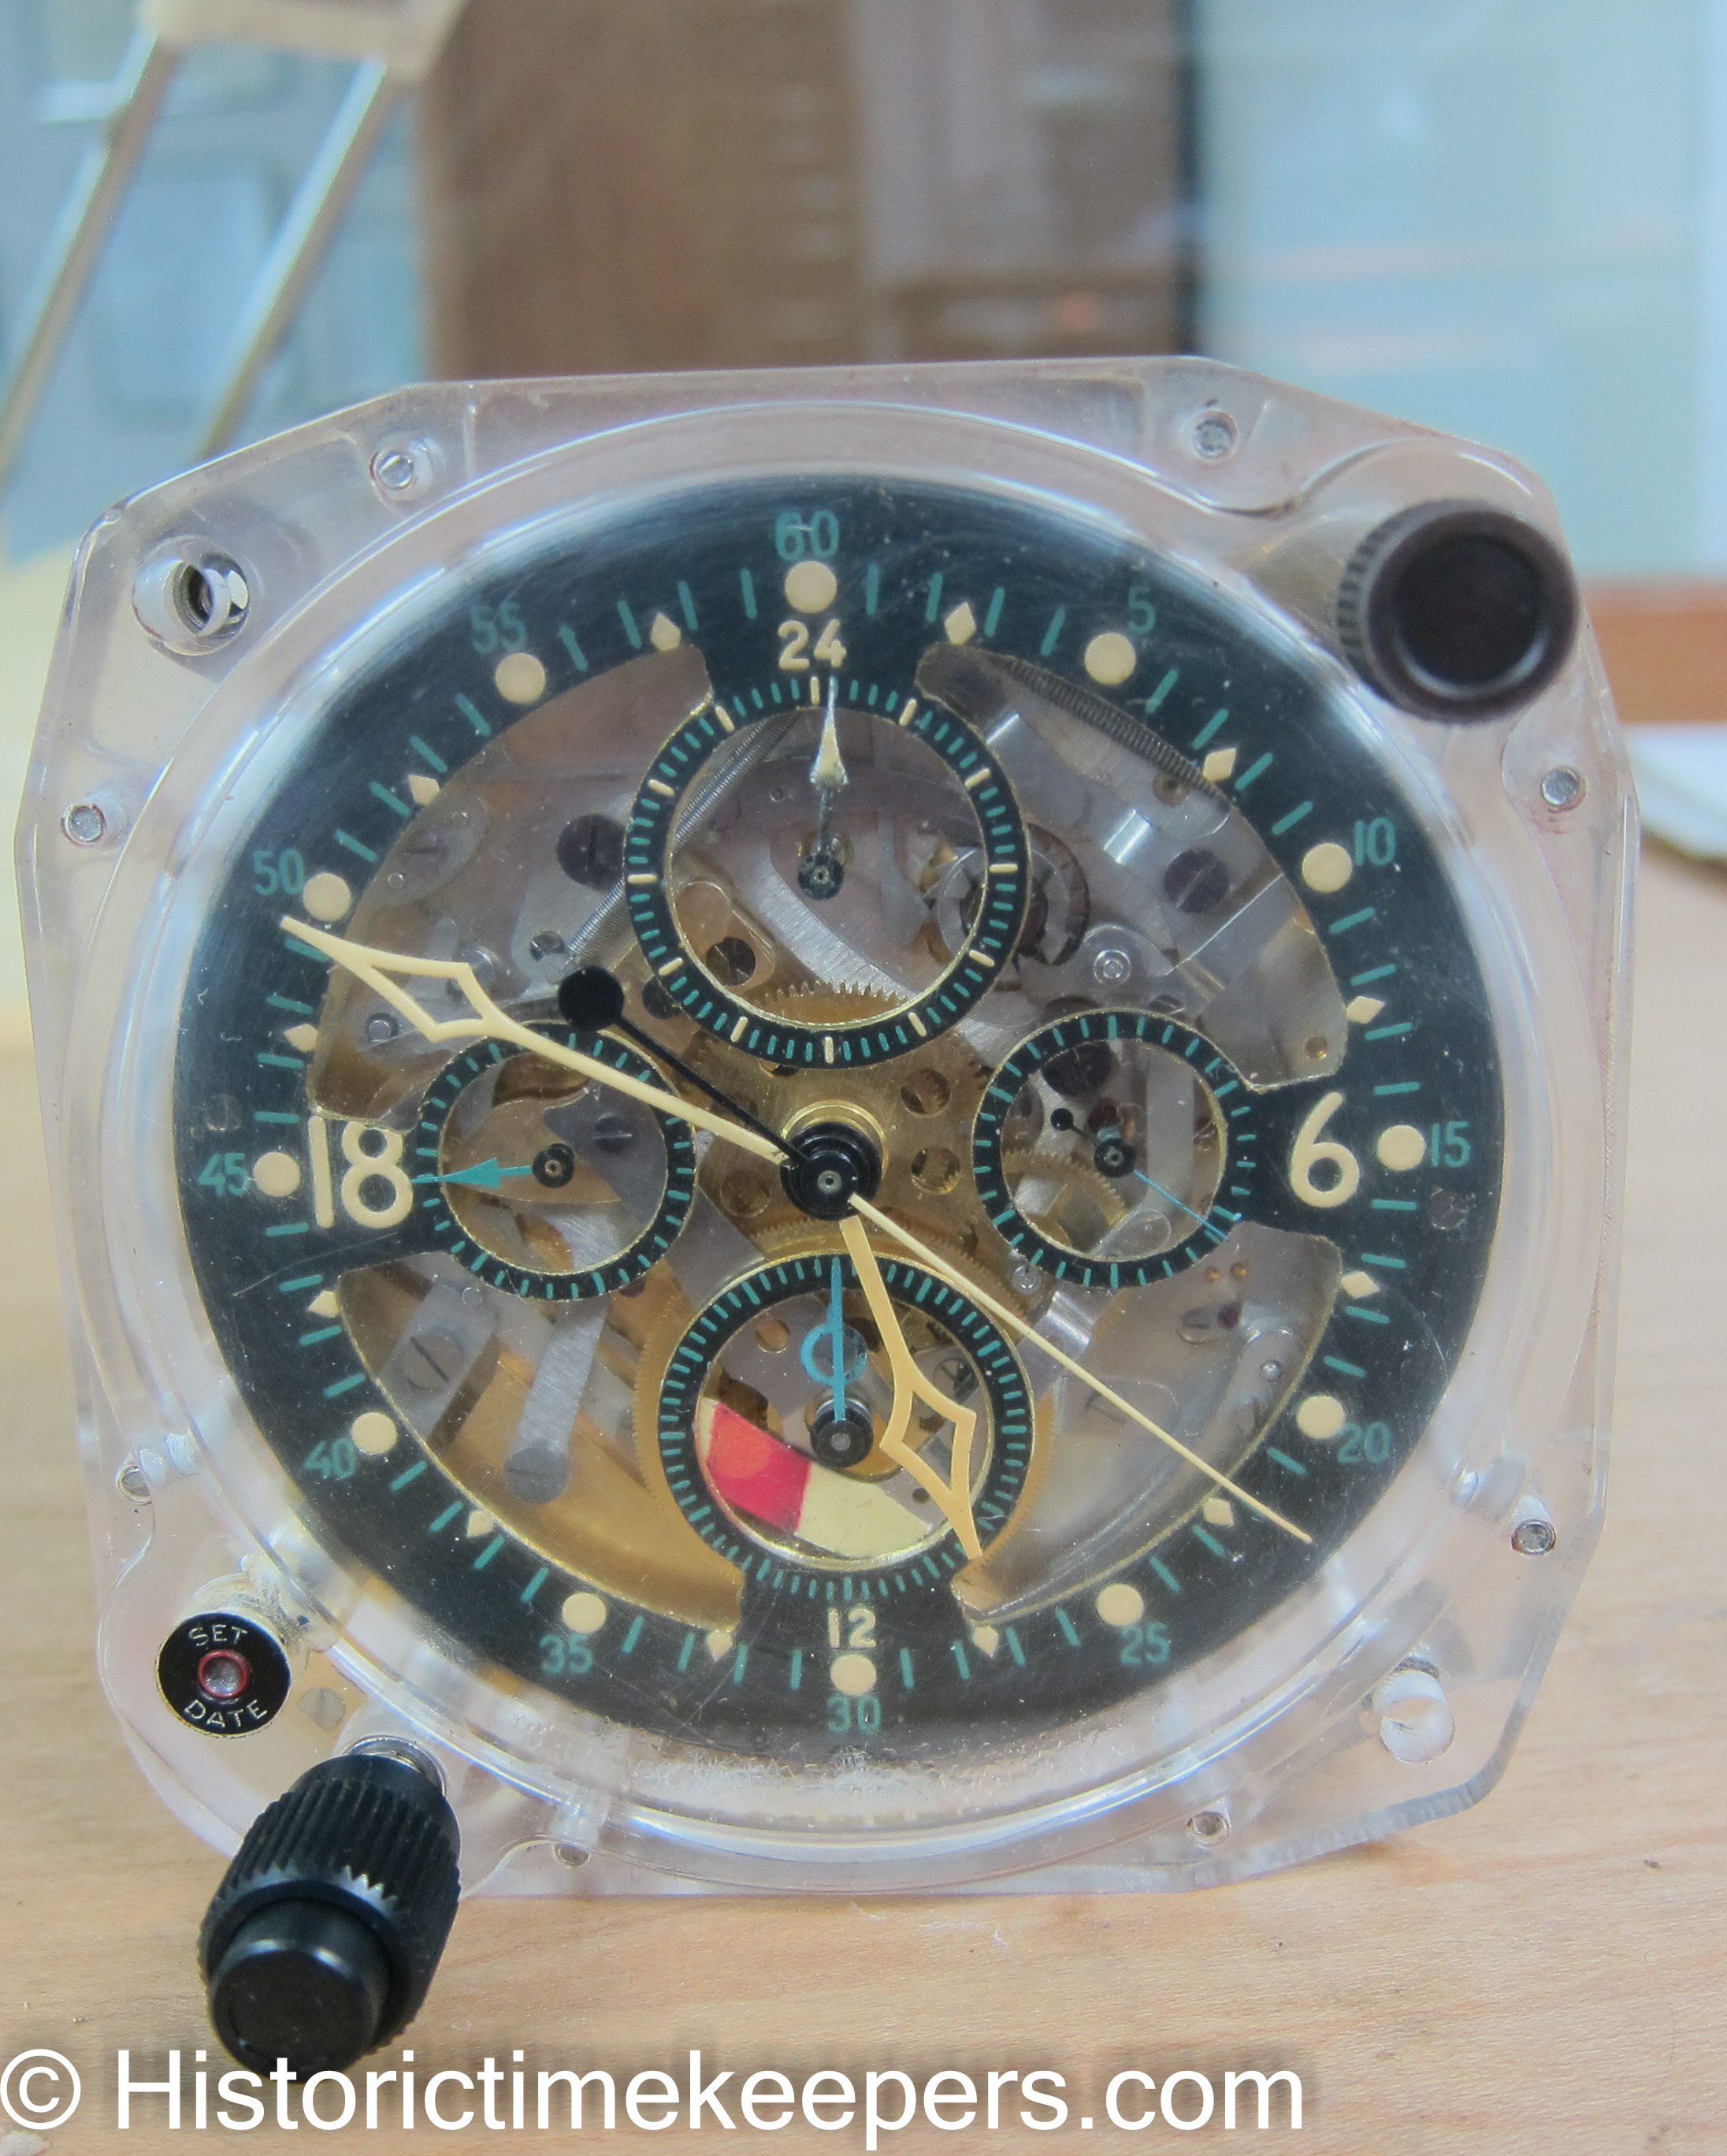 Preproduction Sample Elgin Hamilton 37500 Aircraft Clock in Original Lucite Case with Skelentonized Dail